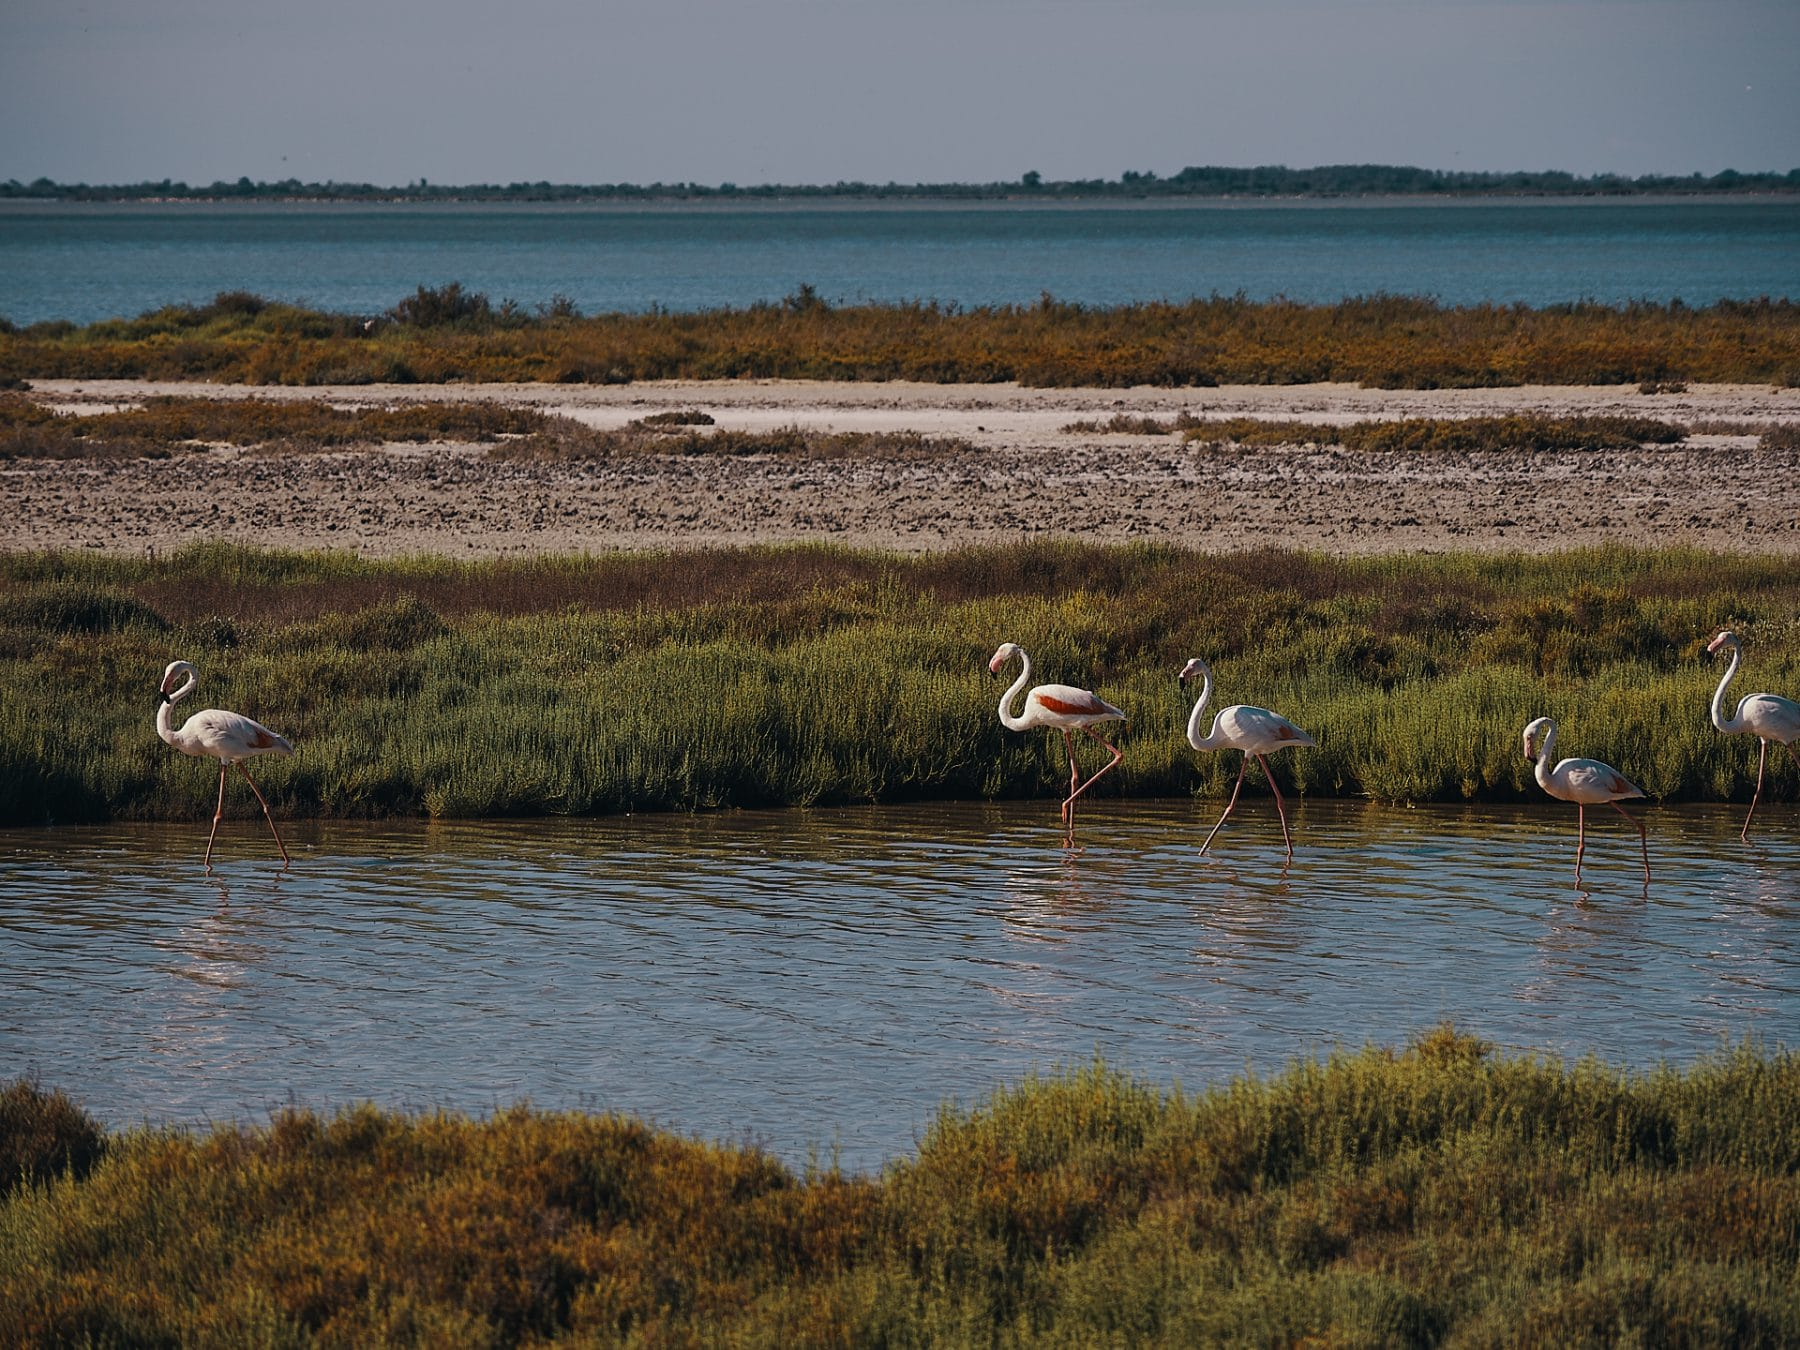 flamants roses camargue france